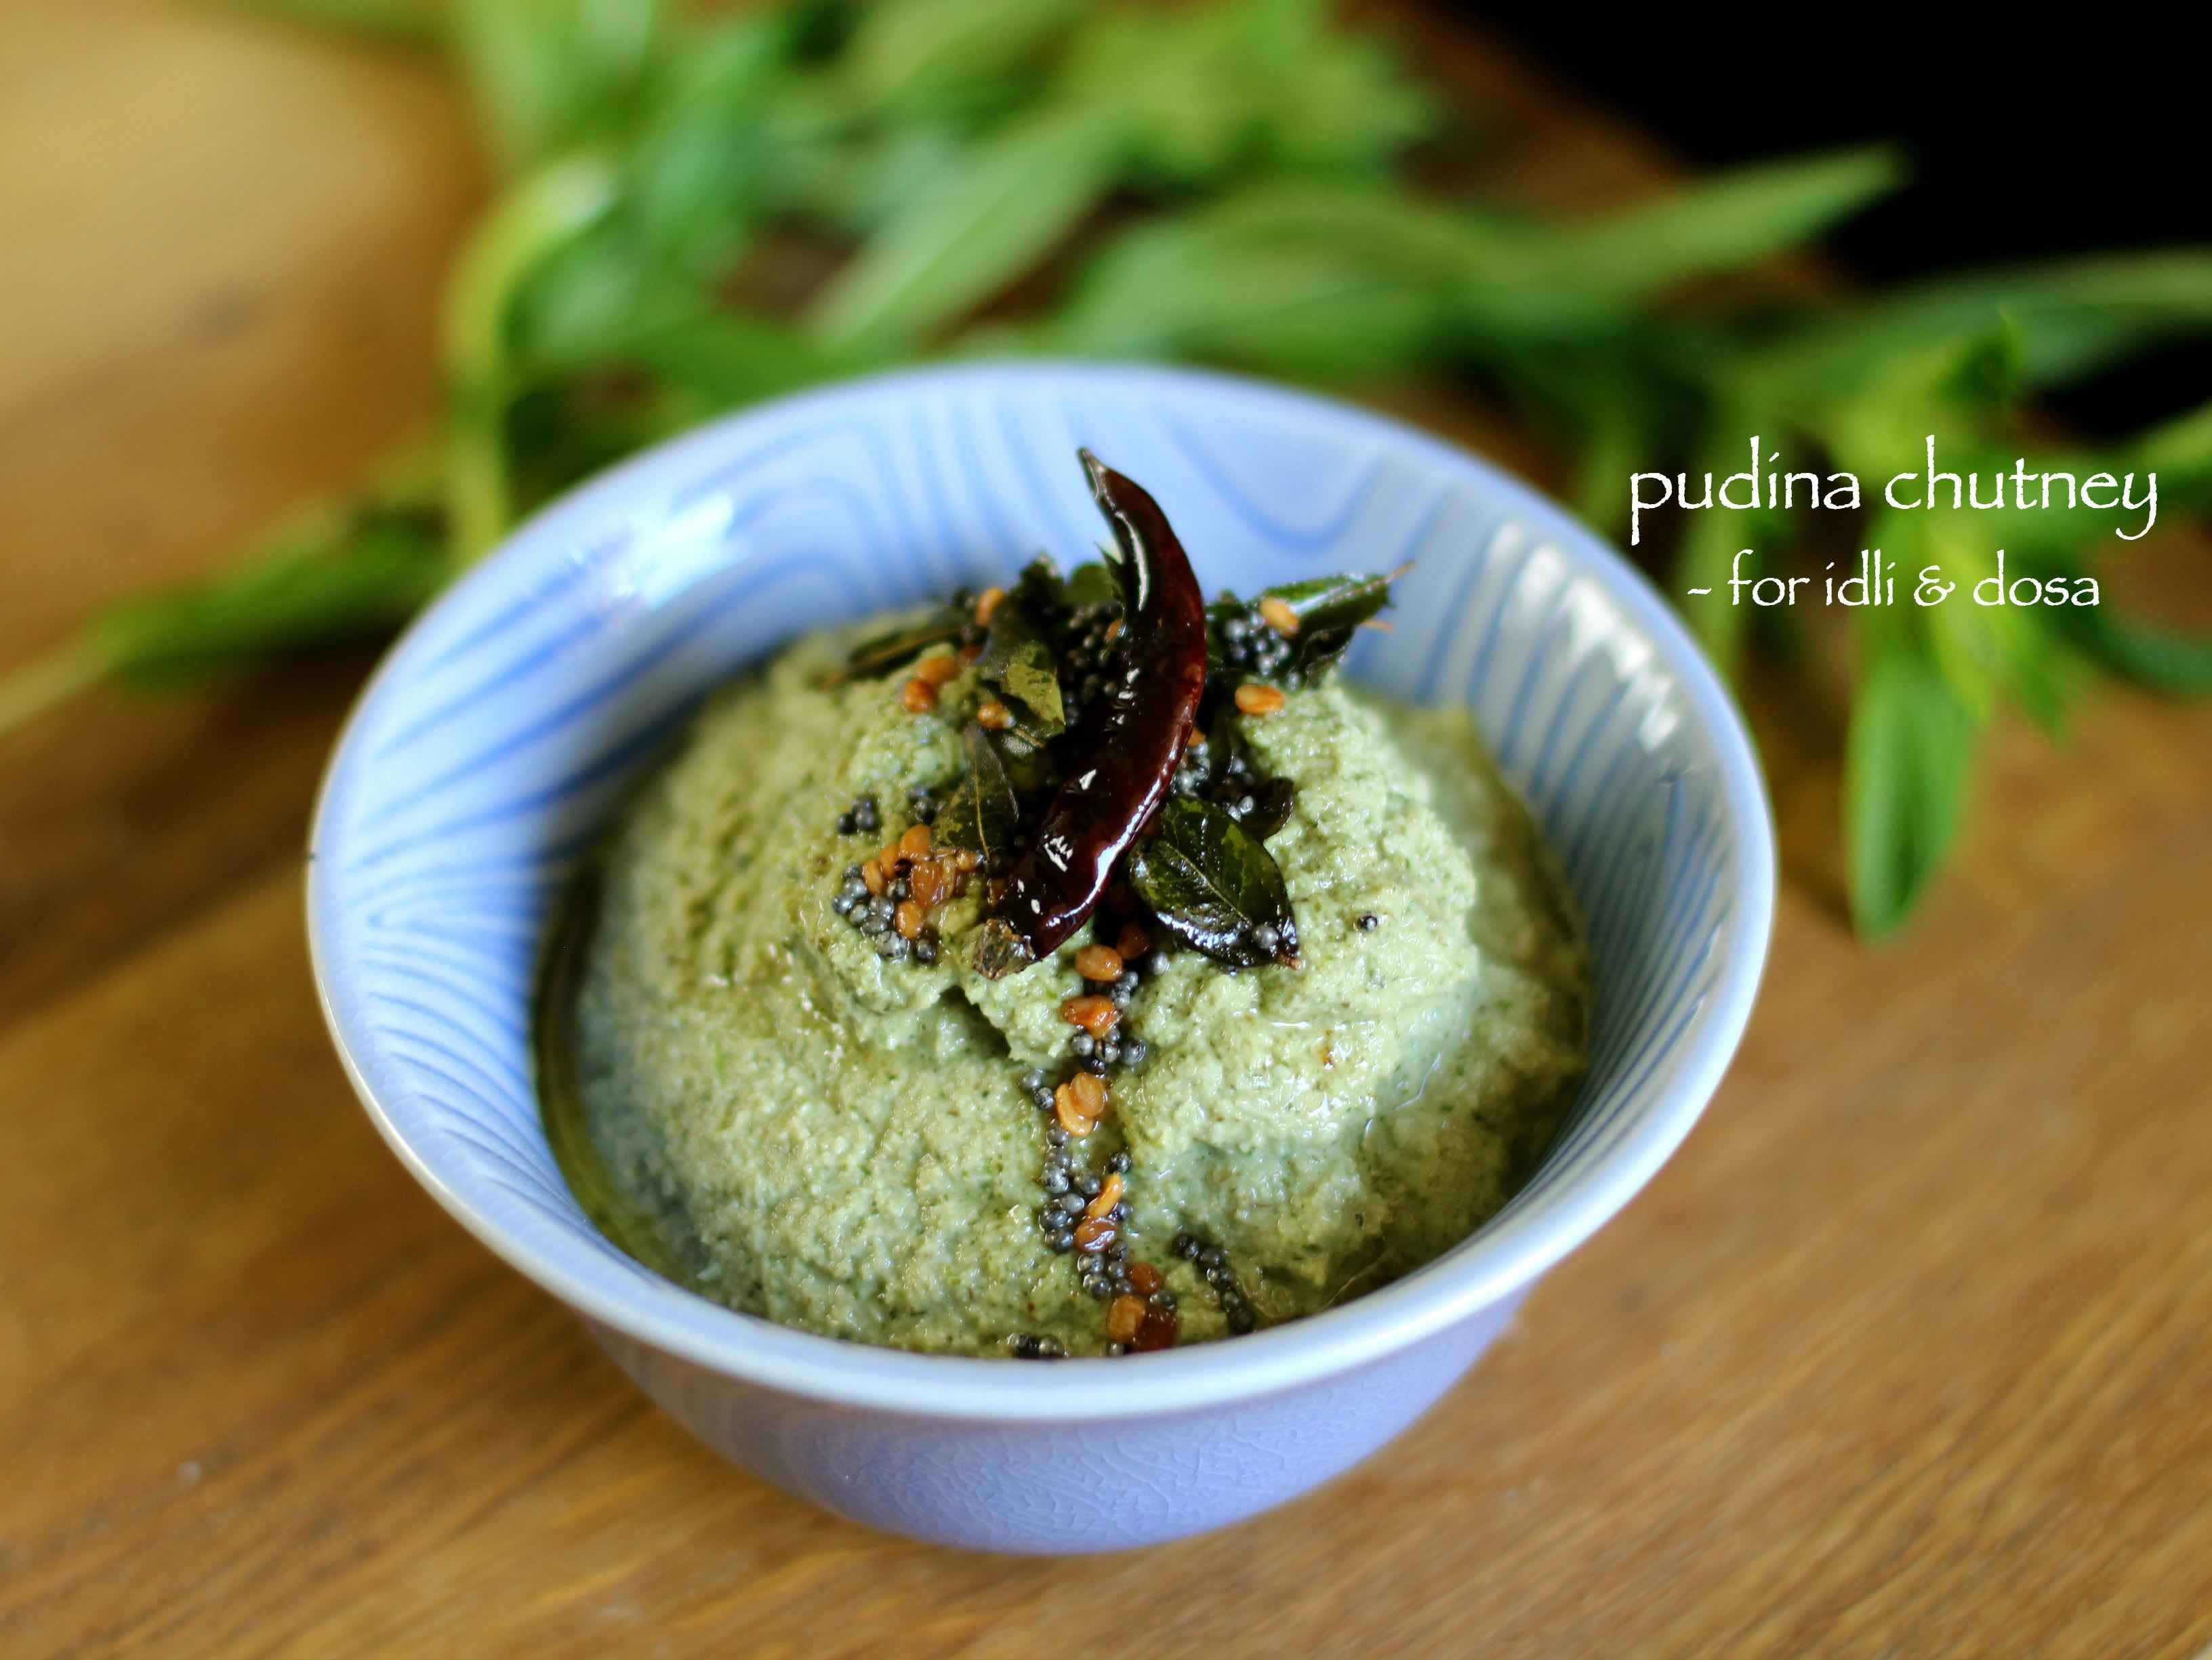 pudina chutney recipe | mint chutney recipe | pudina pachadi recipe